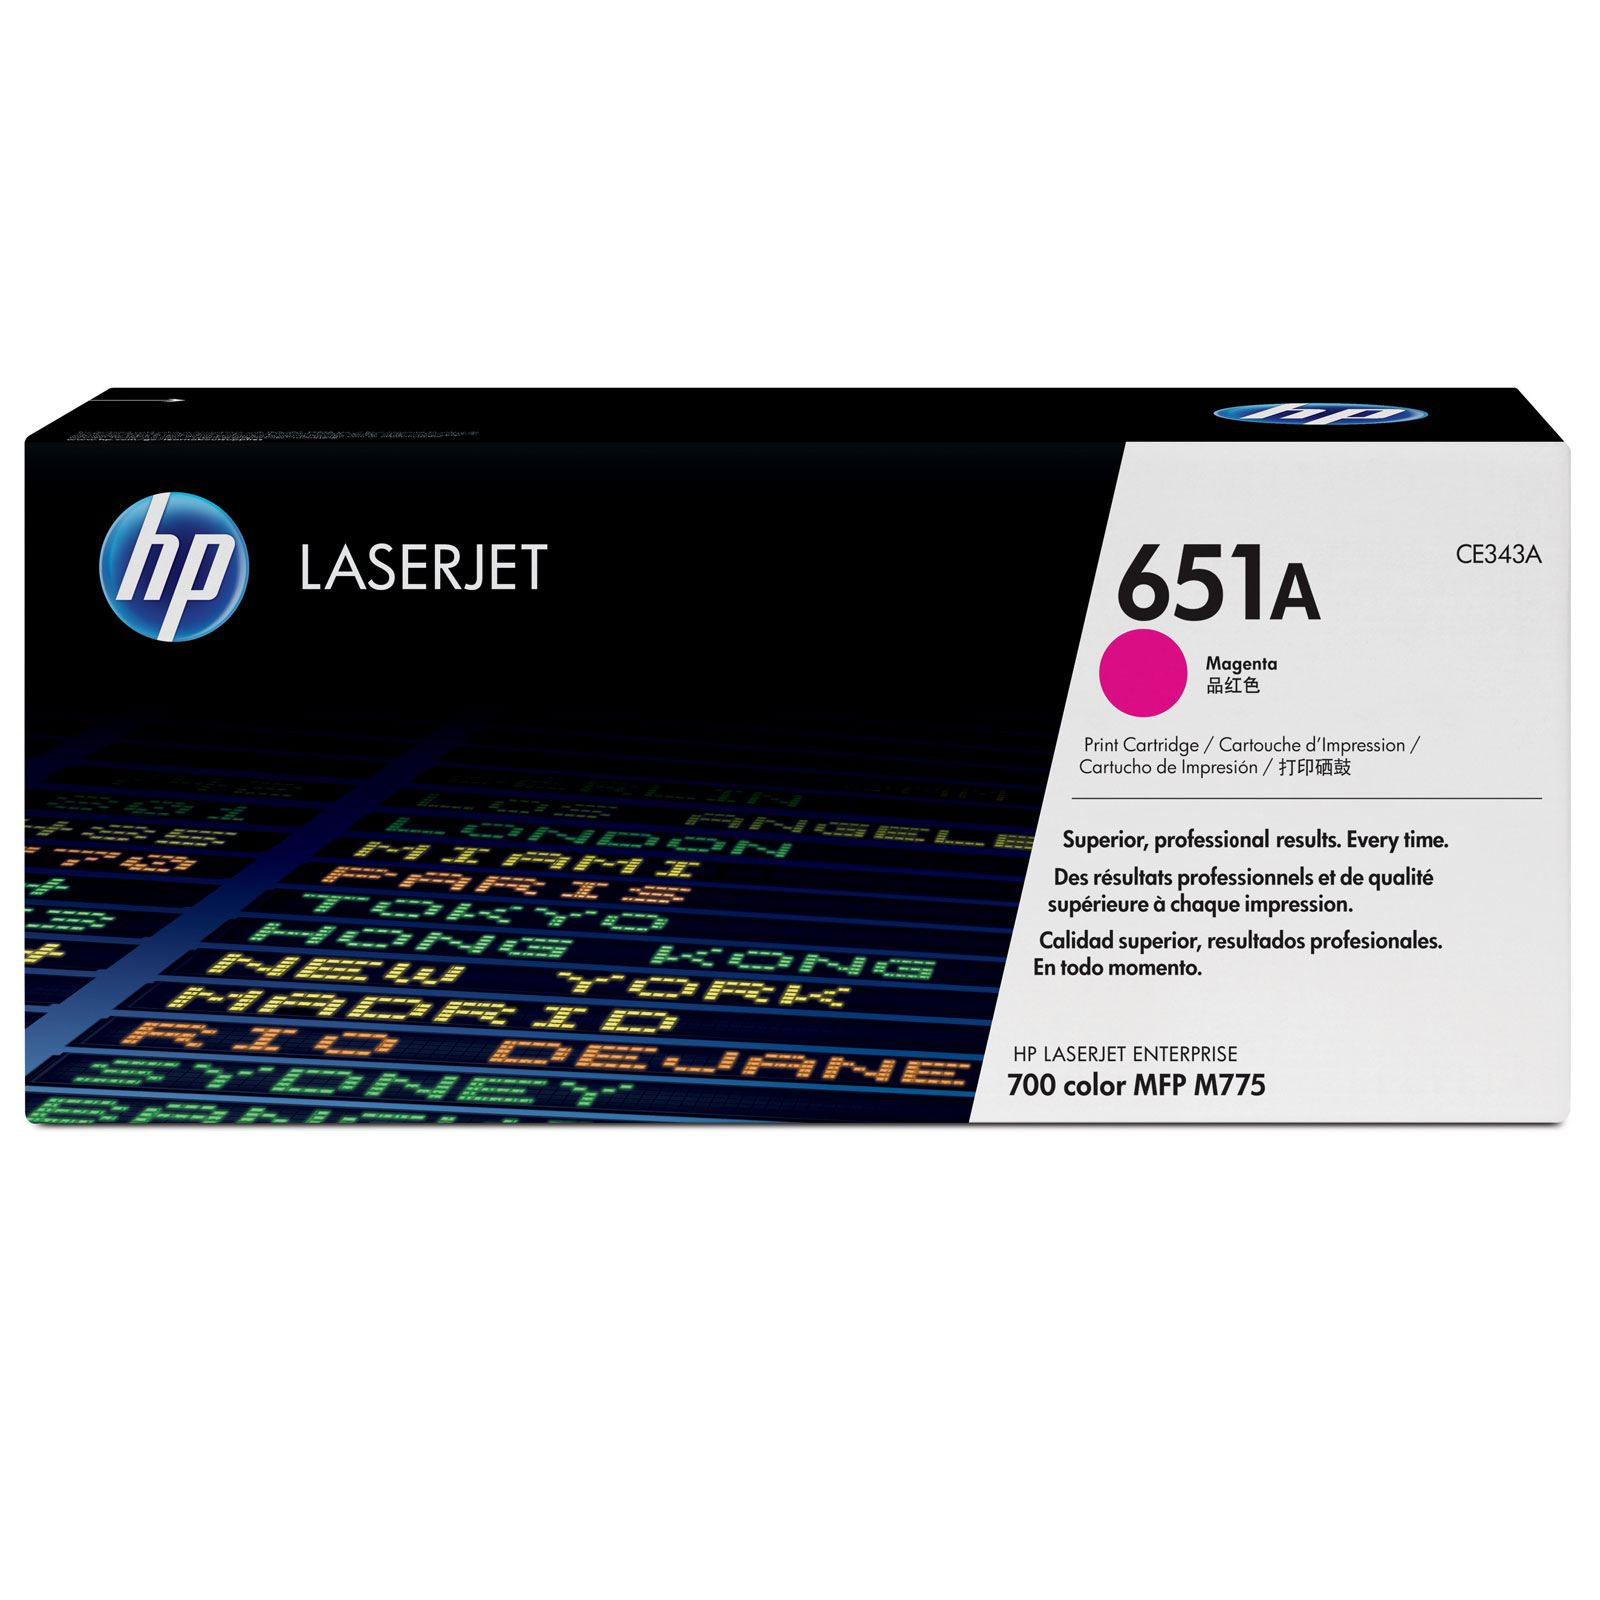 HP 651A Magenta Toner Cartridge - CE 343A